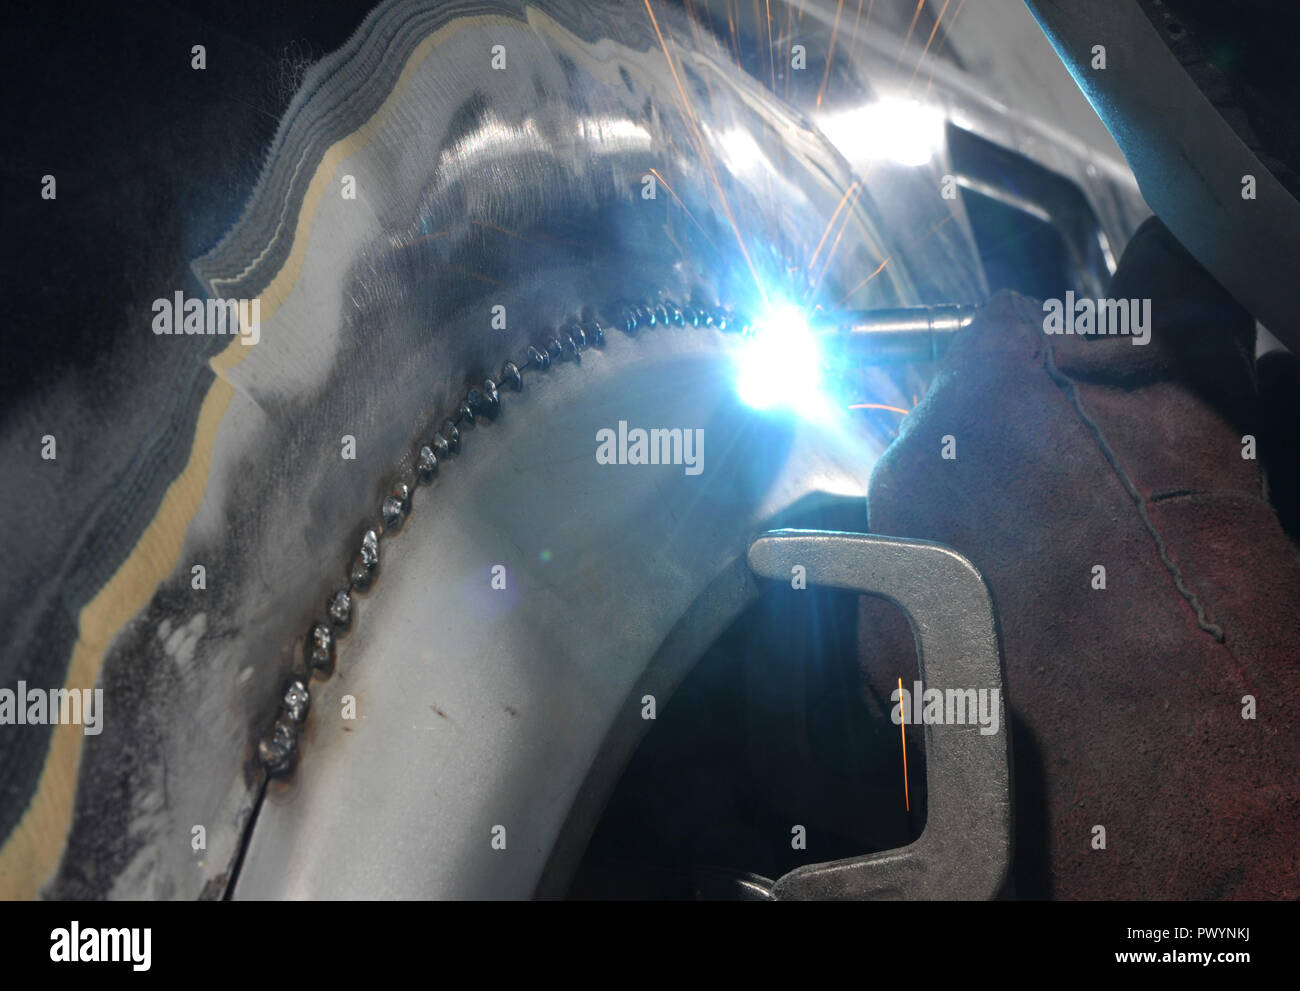 MIG Welding repairs to a Mk1 MR2 classic car - Stock Image